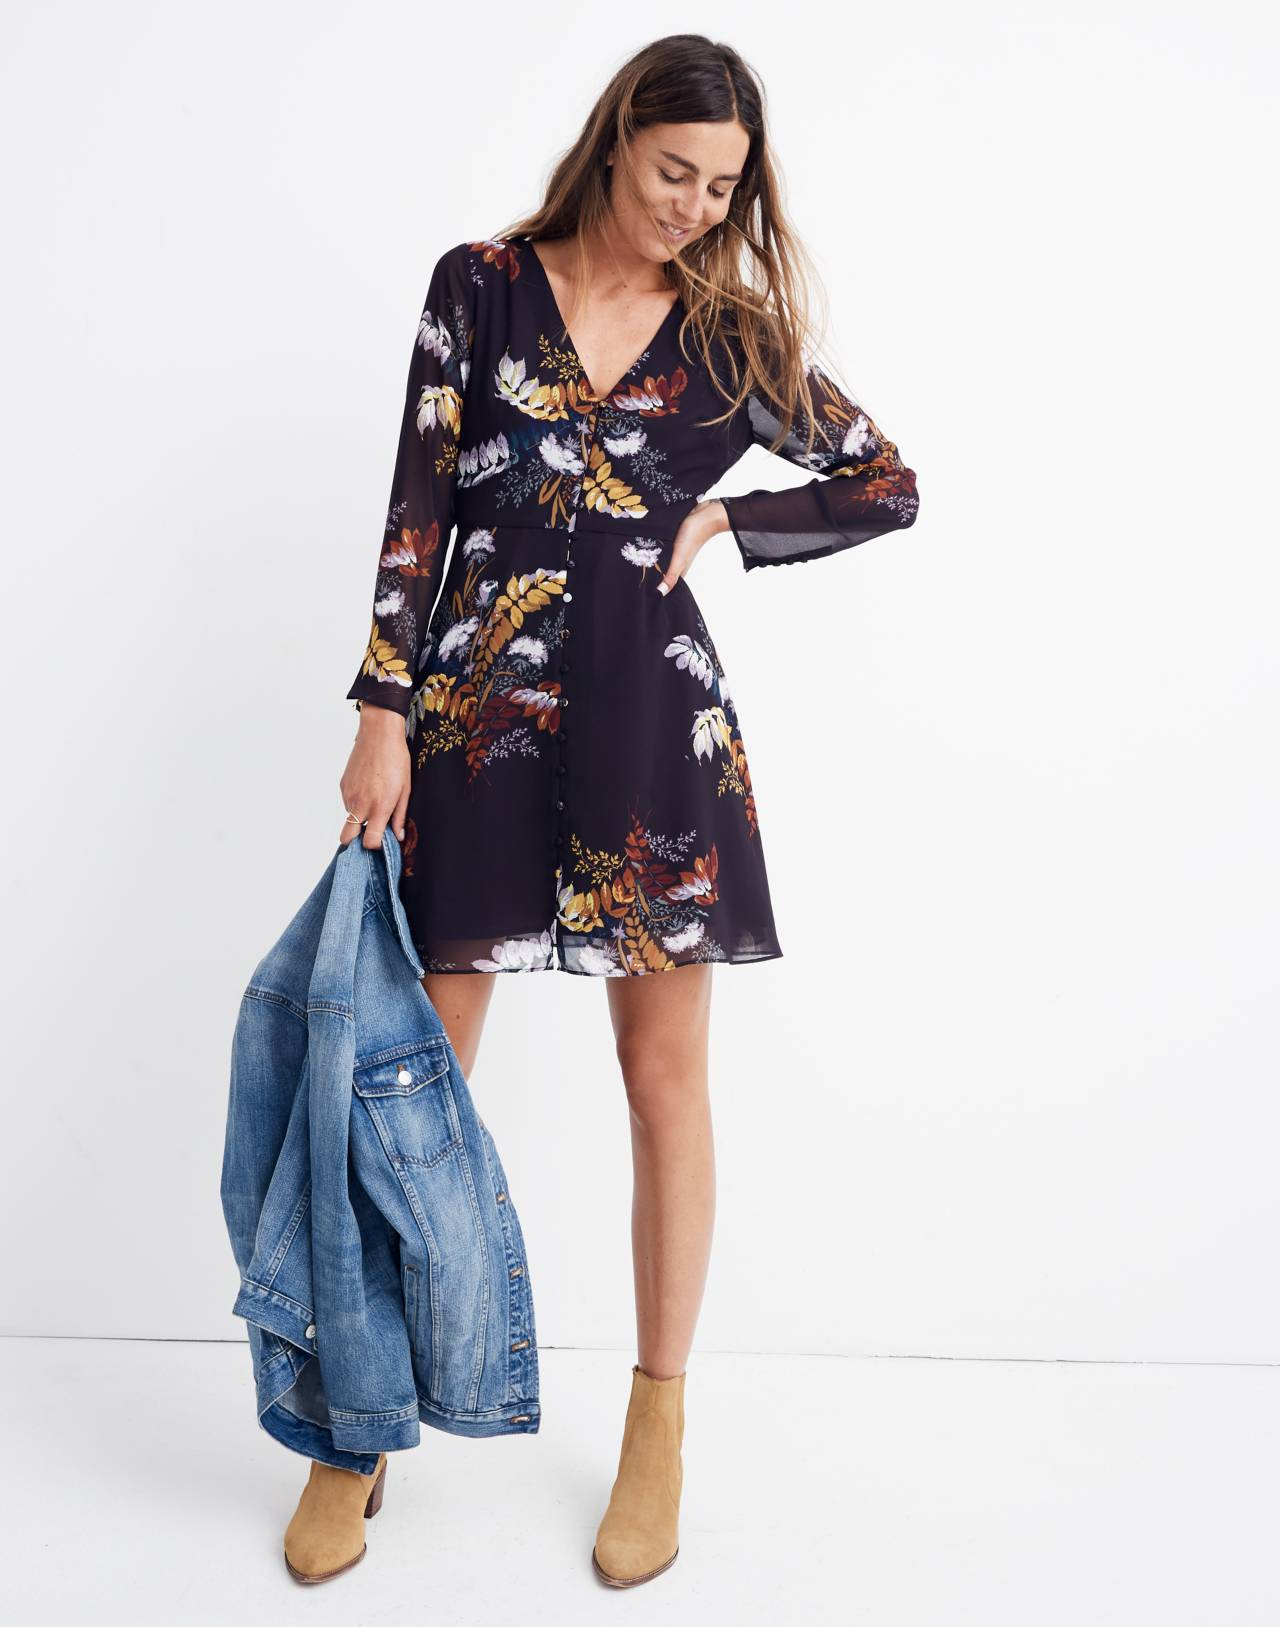 Lilyblossom Button-Front Dress in Blooming Oasis in harvest dark eggplant image 1